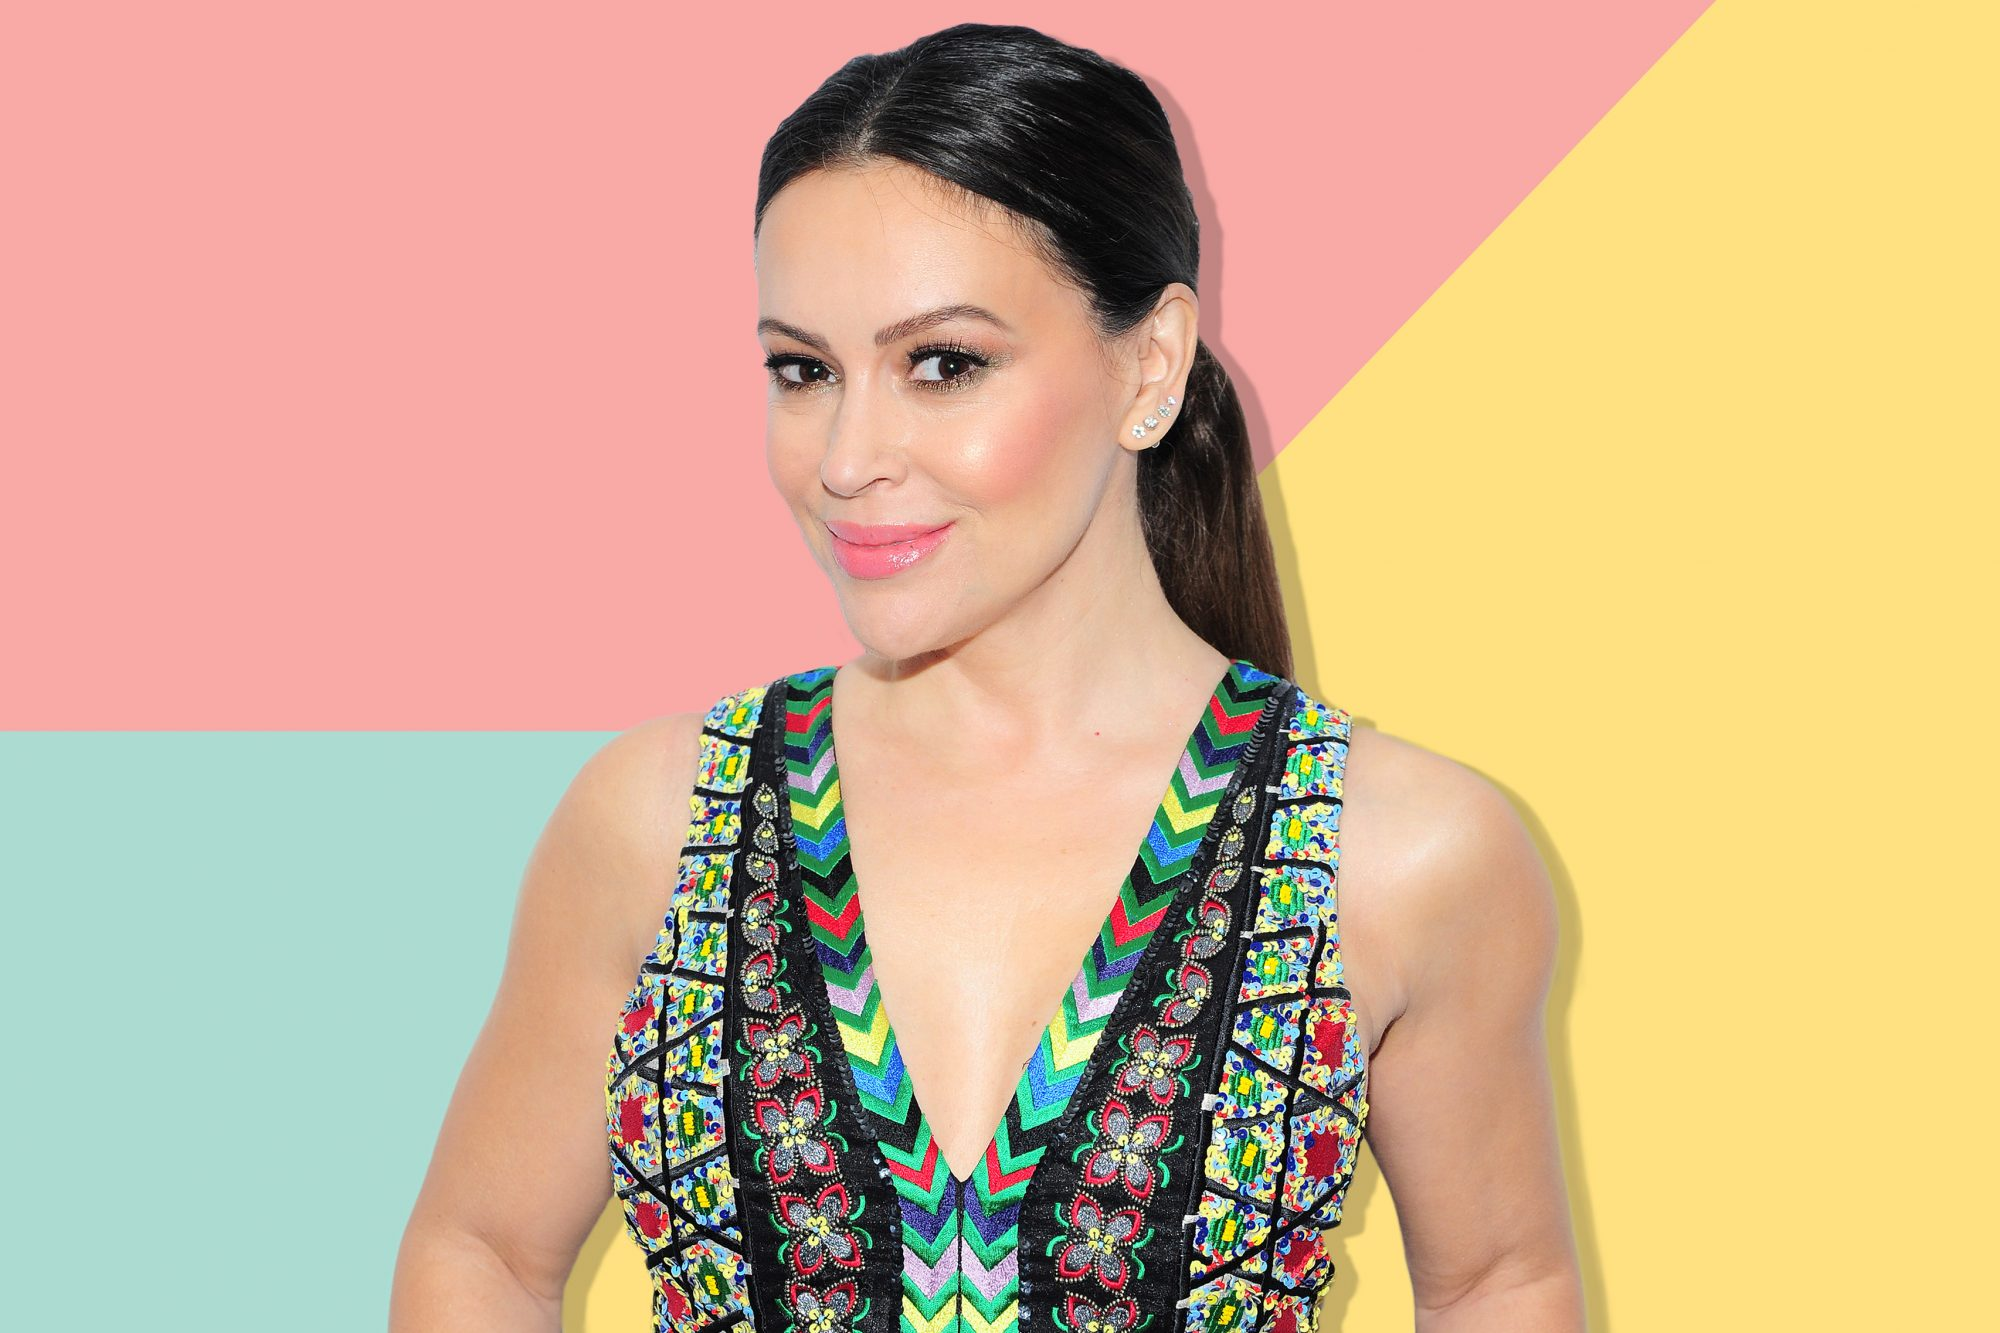 An image of Alyssa Milano on a colorful background.